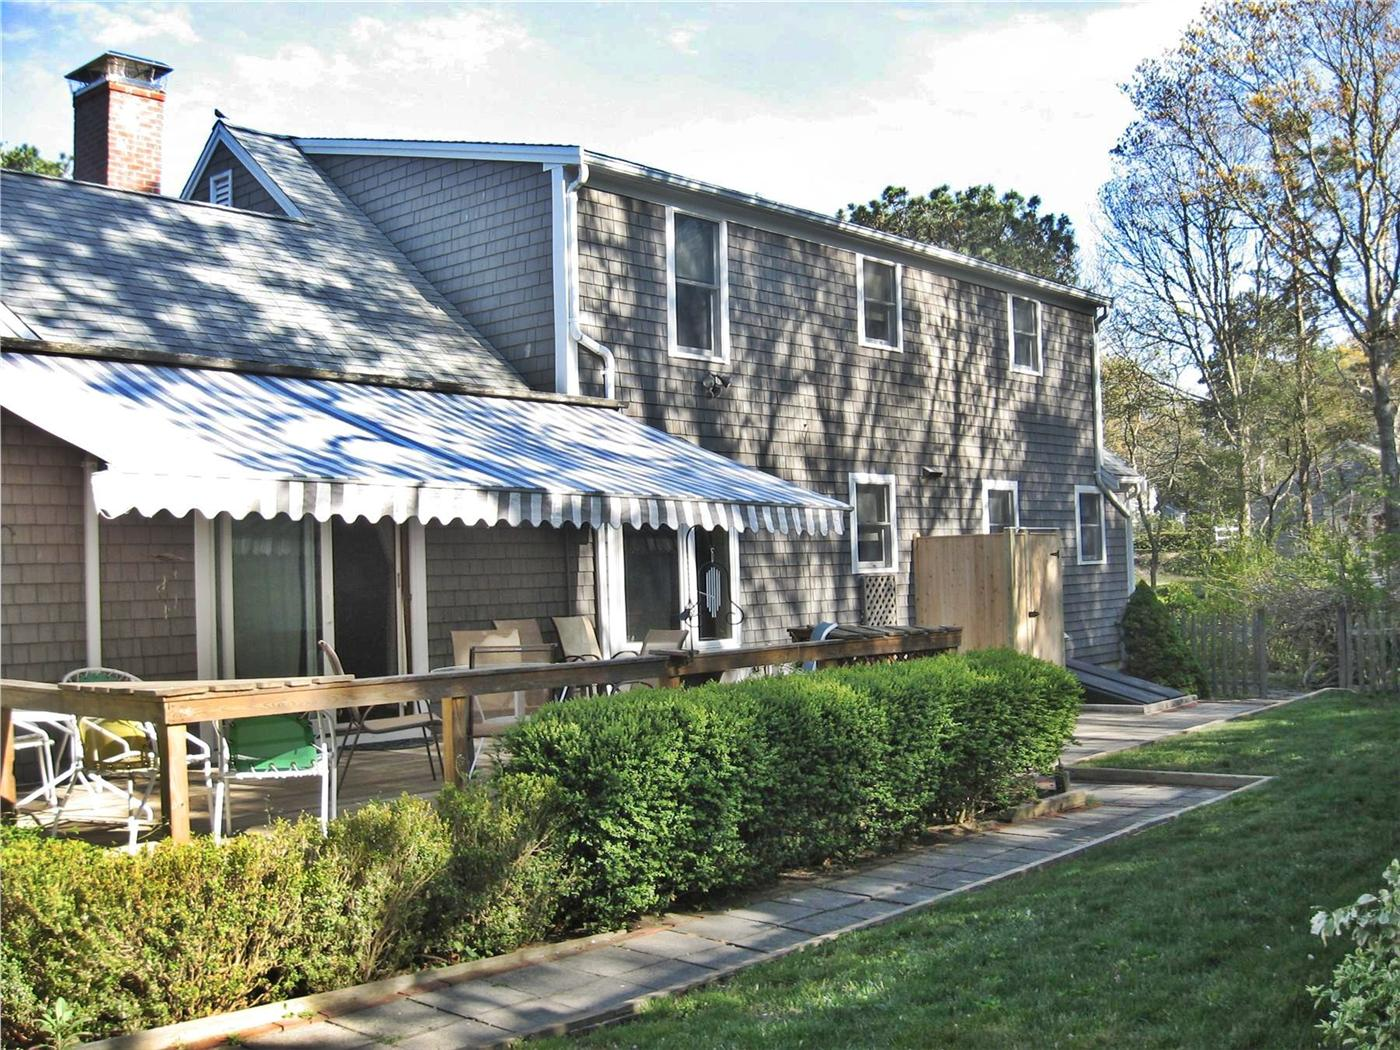 Dennis vacation rental home in cape cod ma 02660 id 21394 for Cabin rentals in cape cod ma